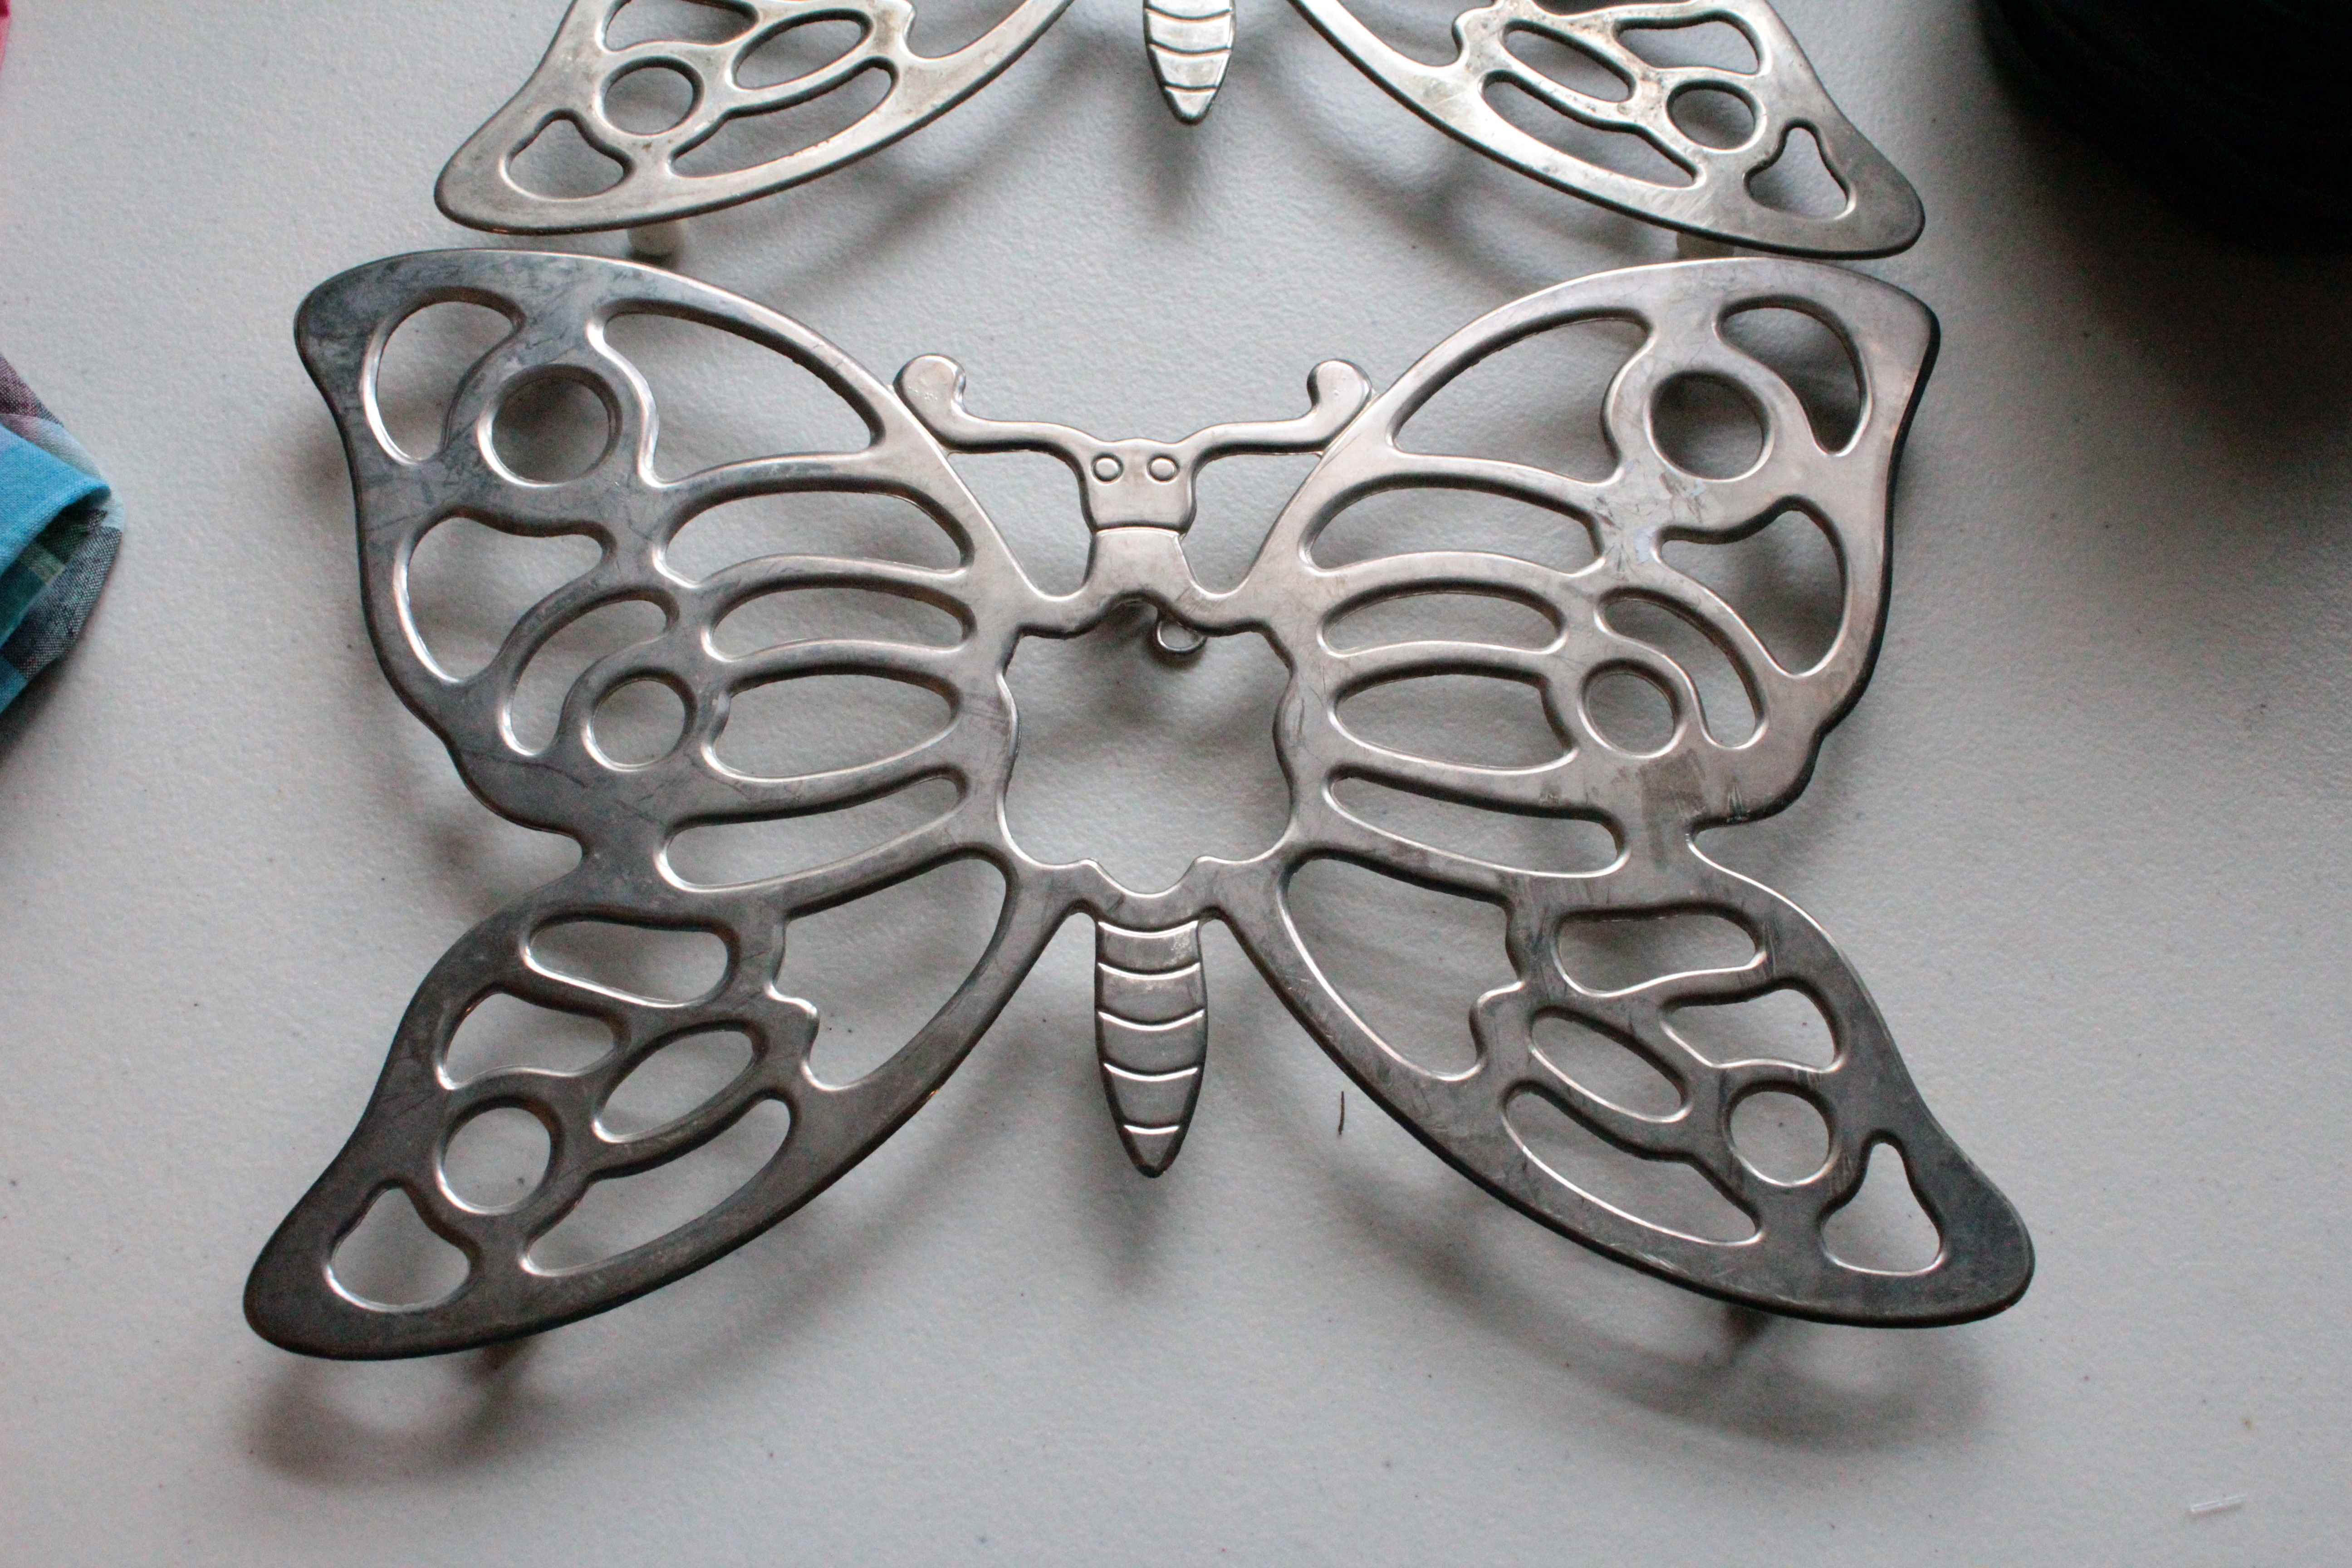 I found these two butterfly trivets in different sections of one thrift store. They're nice and heavy and absolutely adorable. I'm going to put them in the Alex's tumbler to polish them up a bit.